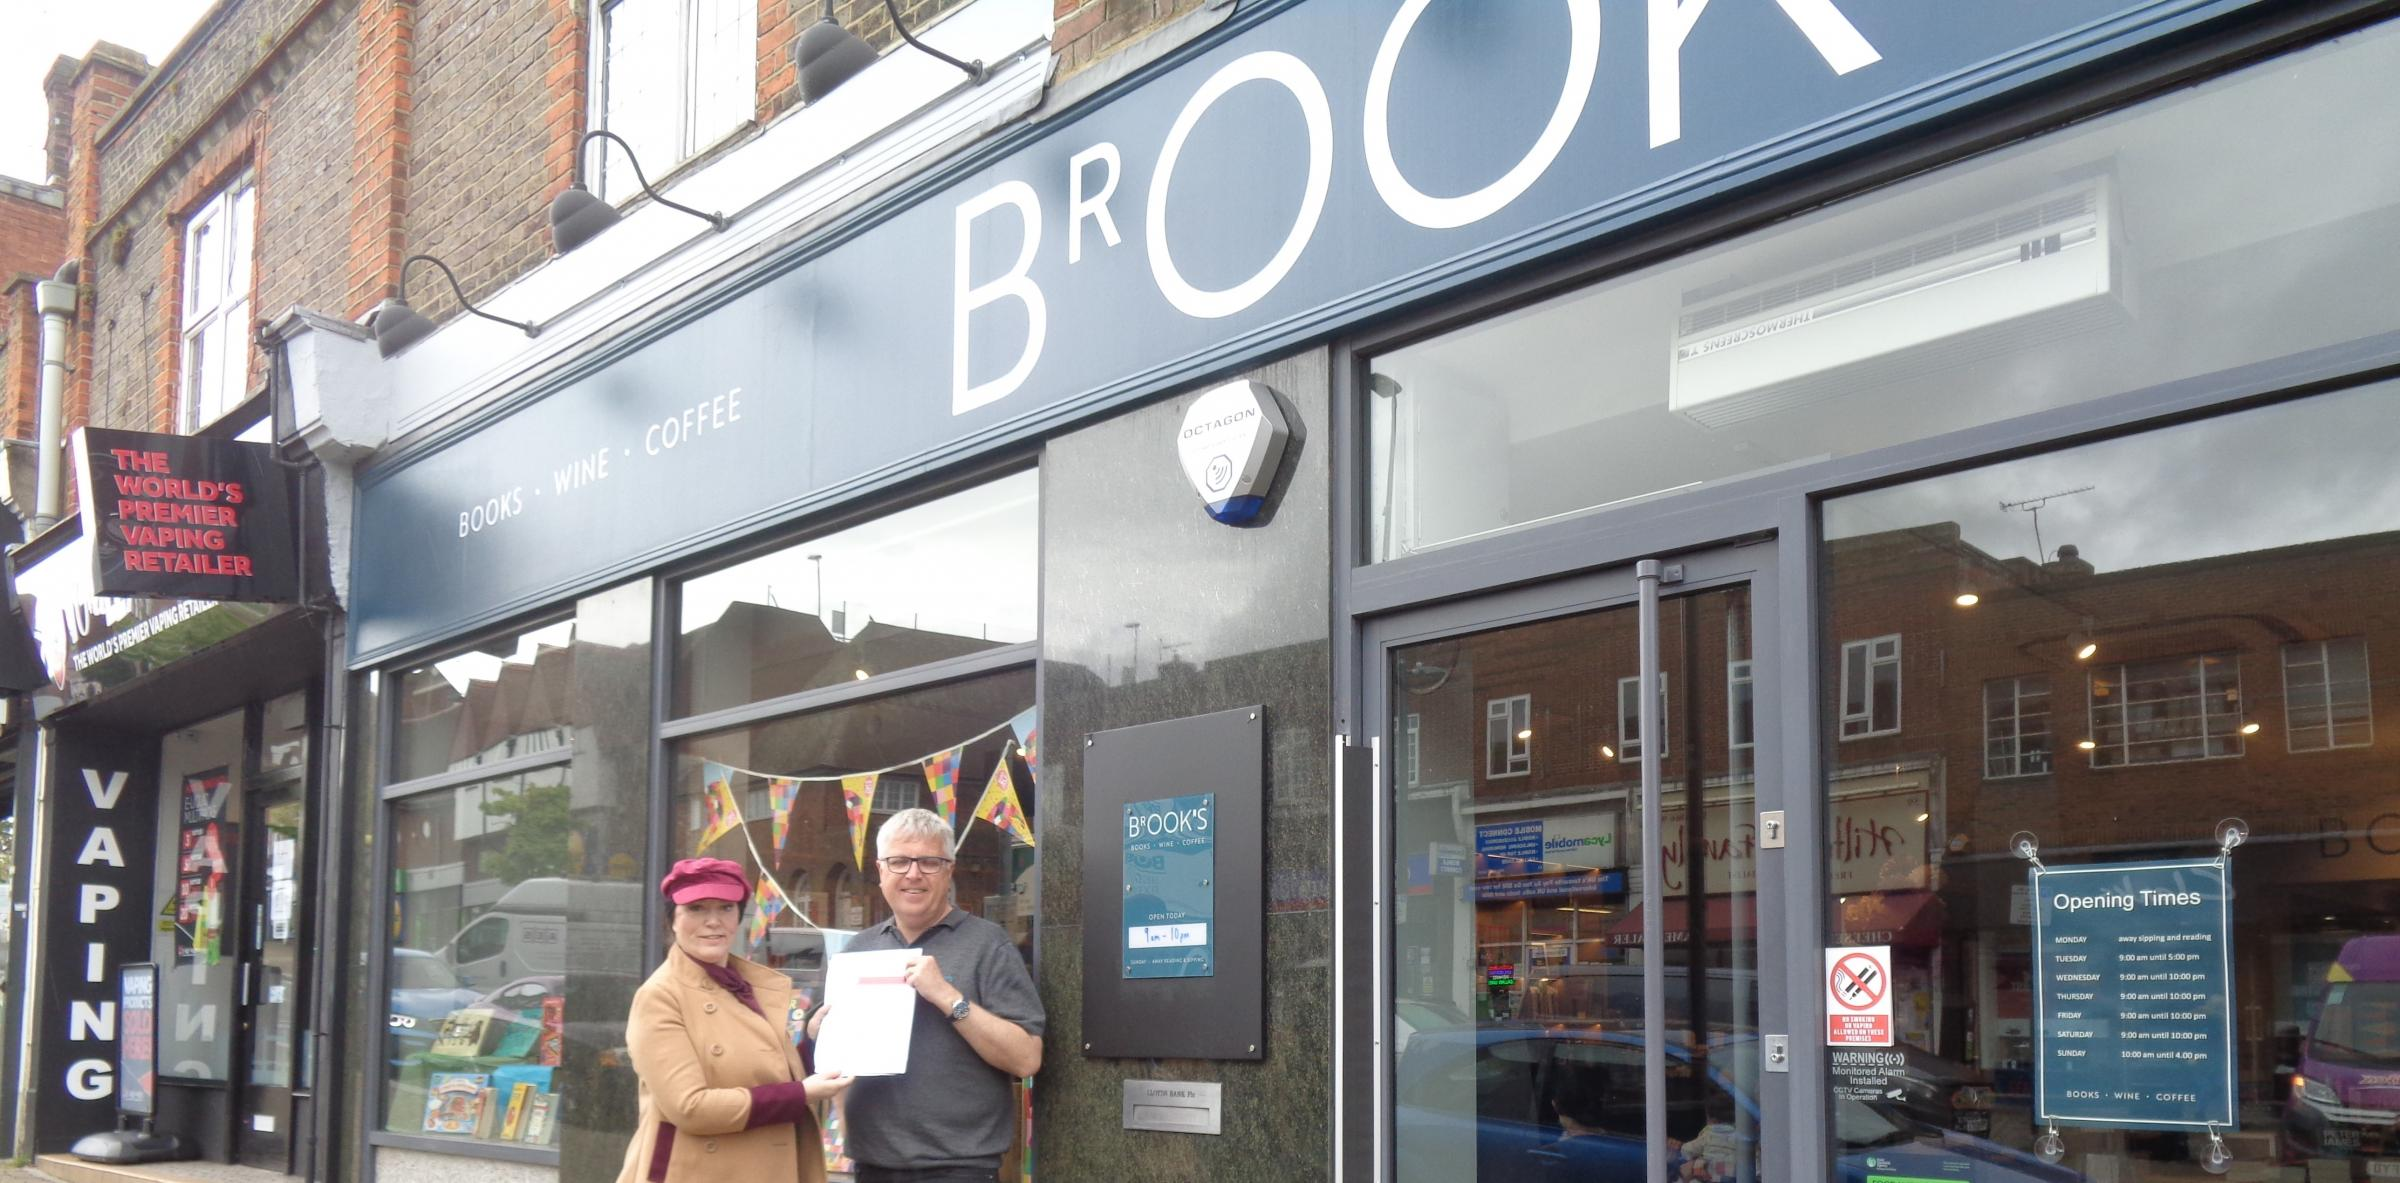 Petitioner Suzanne Sedgeman and bookshop owner Peter Brook